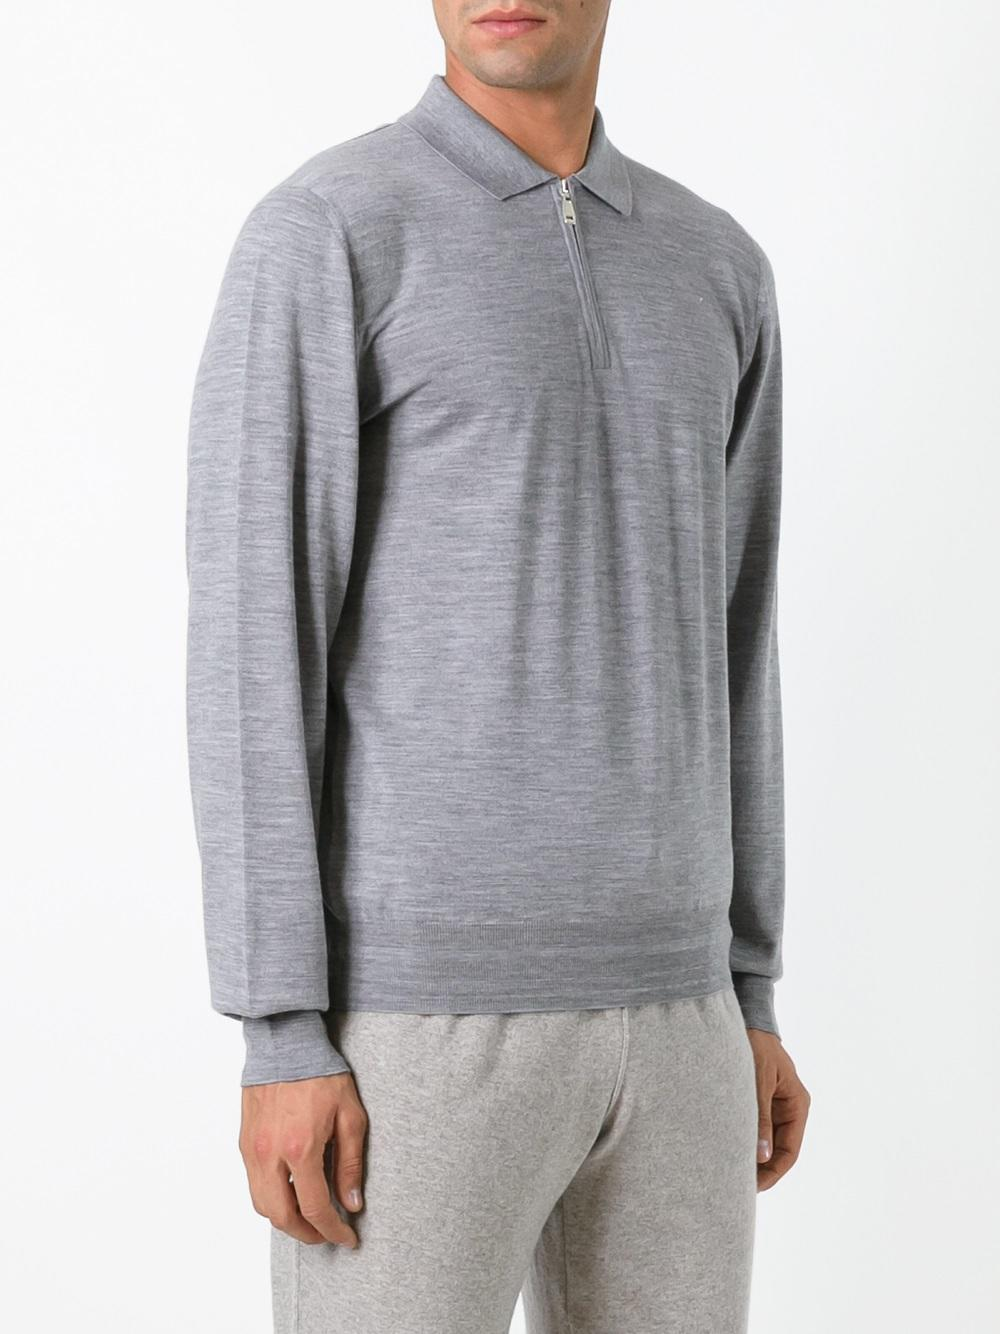 Brioni Wool Zip Up Polo Shirt in Grey (Grey) for Men